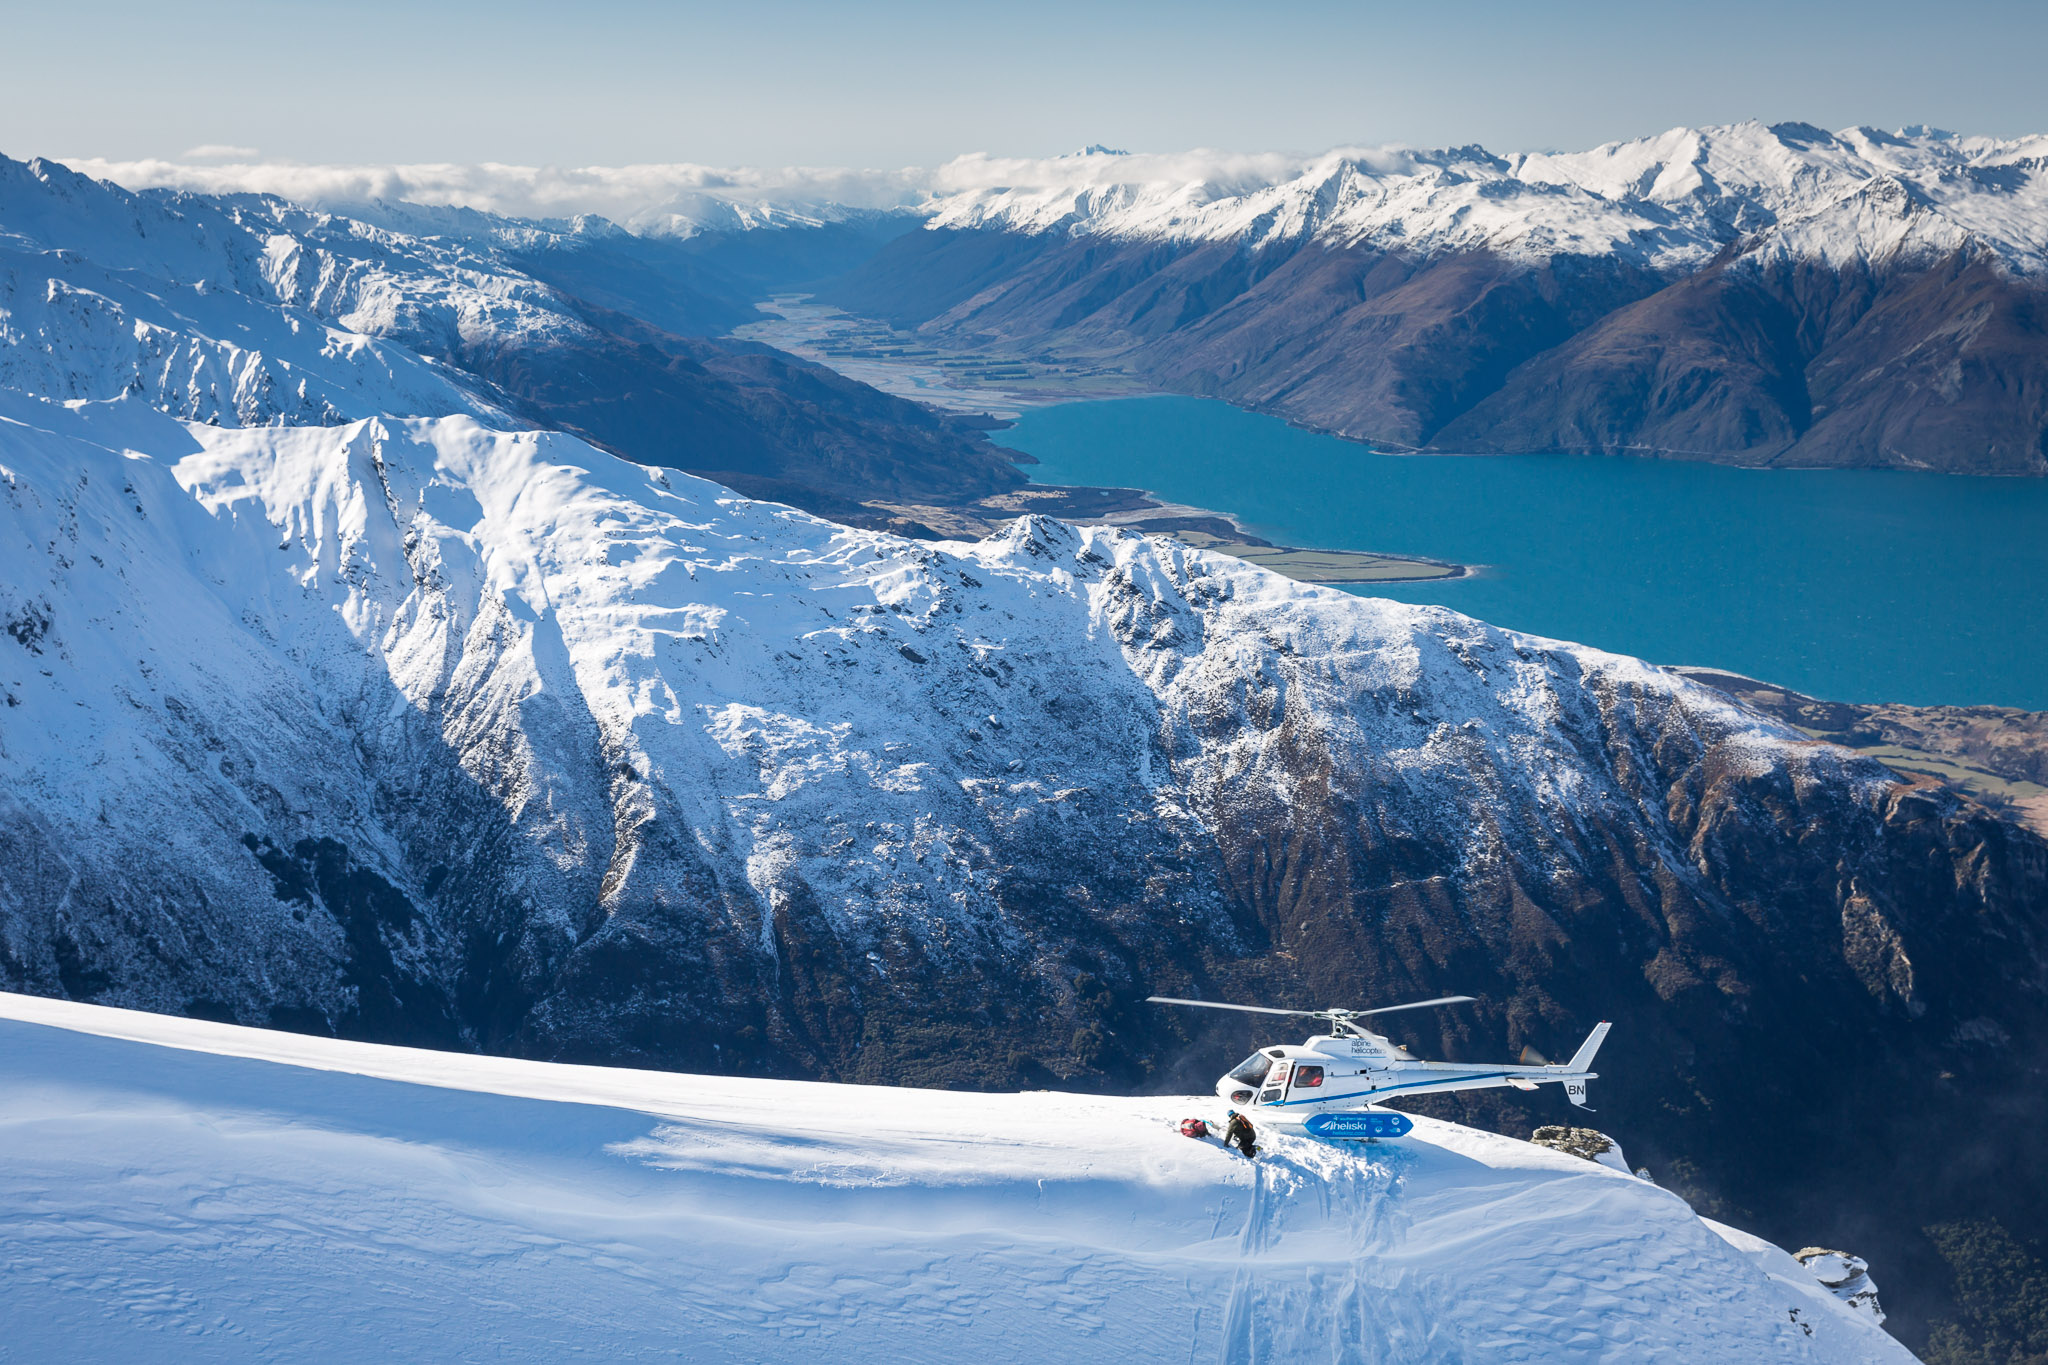 heli ski jobs with Locals That Love Queenstown Wanaka Elysia Gibb on Silverton Mountain Cleared To Expand Helicopter Skiing Terrain To Total Of 25000 Acres likewise 369373807 in addition 104037258 furthermore Heavenly Ski Resort Weather additionally Fppoi Banque Cantonale Du Valais 2939.